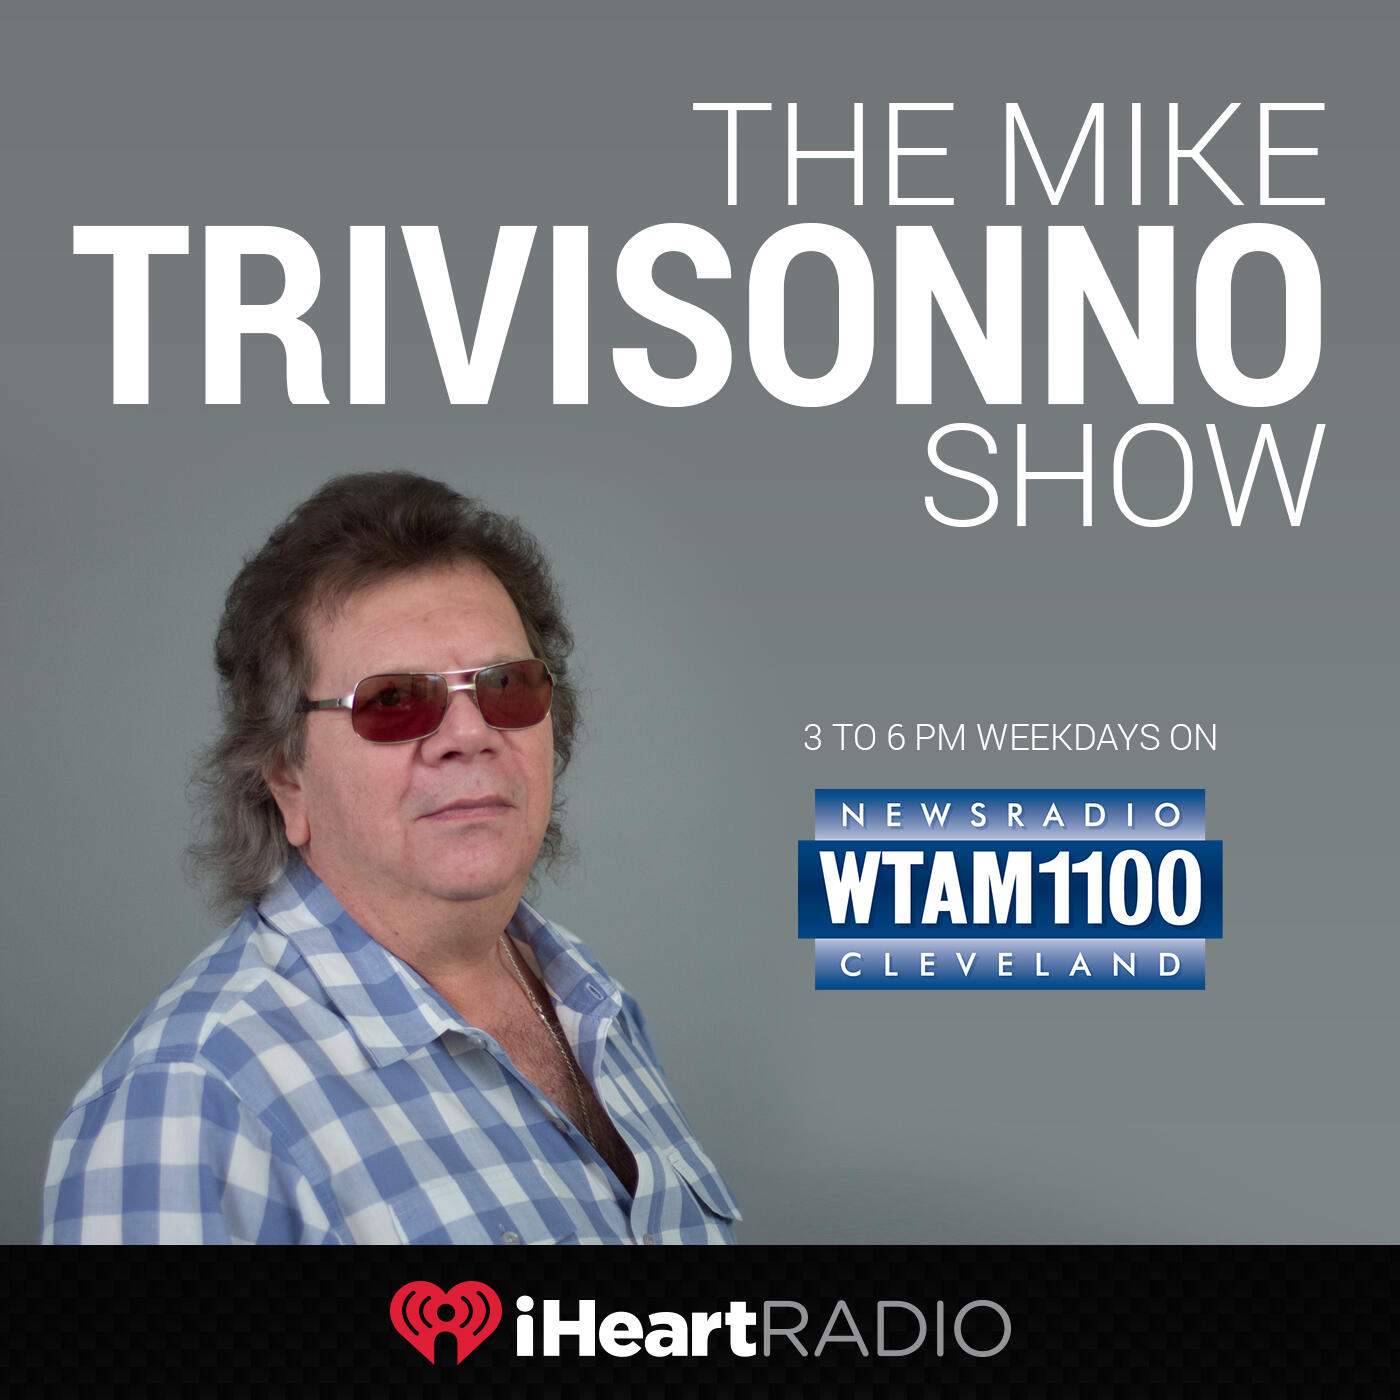 Listen to the The Mike Trivisonno Show Episode - The Mike Trivisonno Show 5-25-20 on iHeartRadio | iHeartRadio